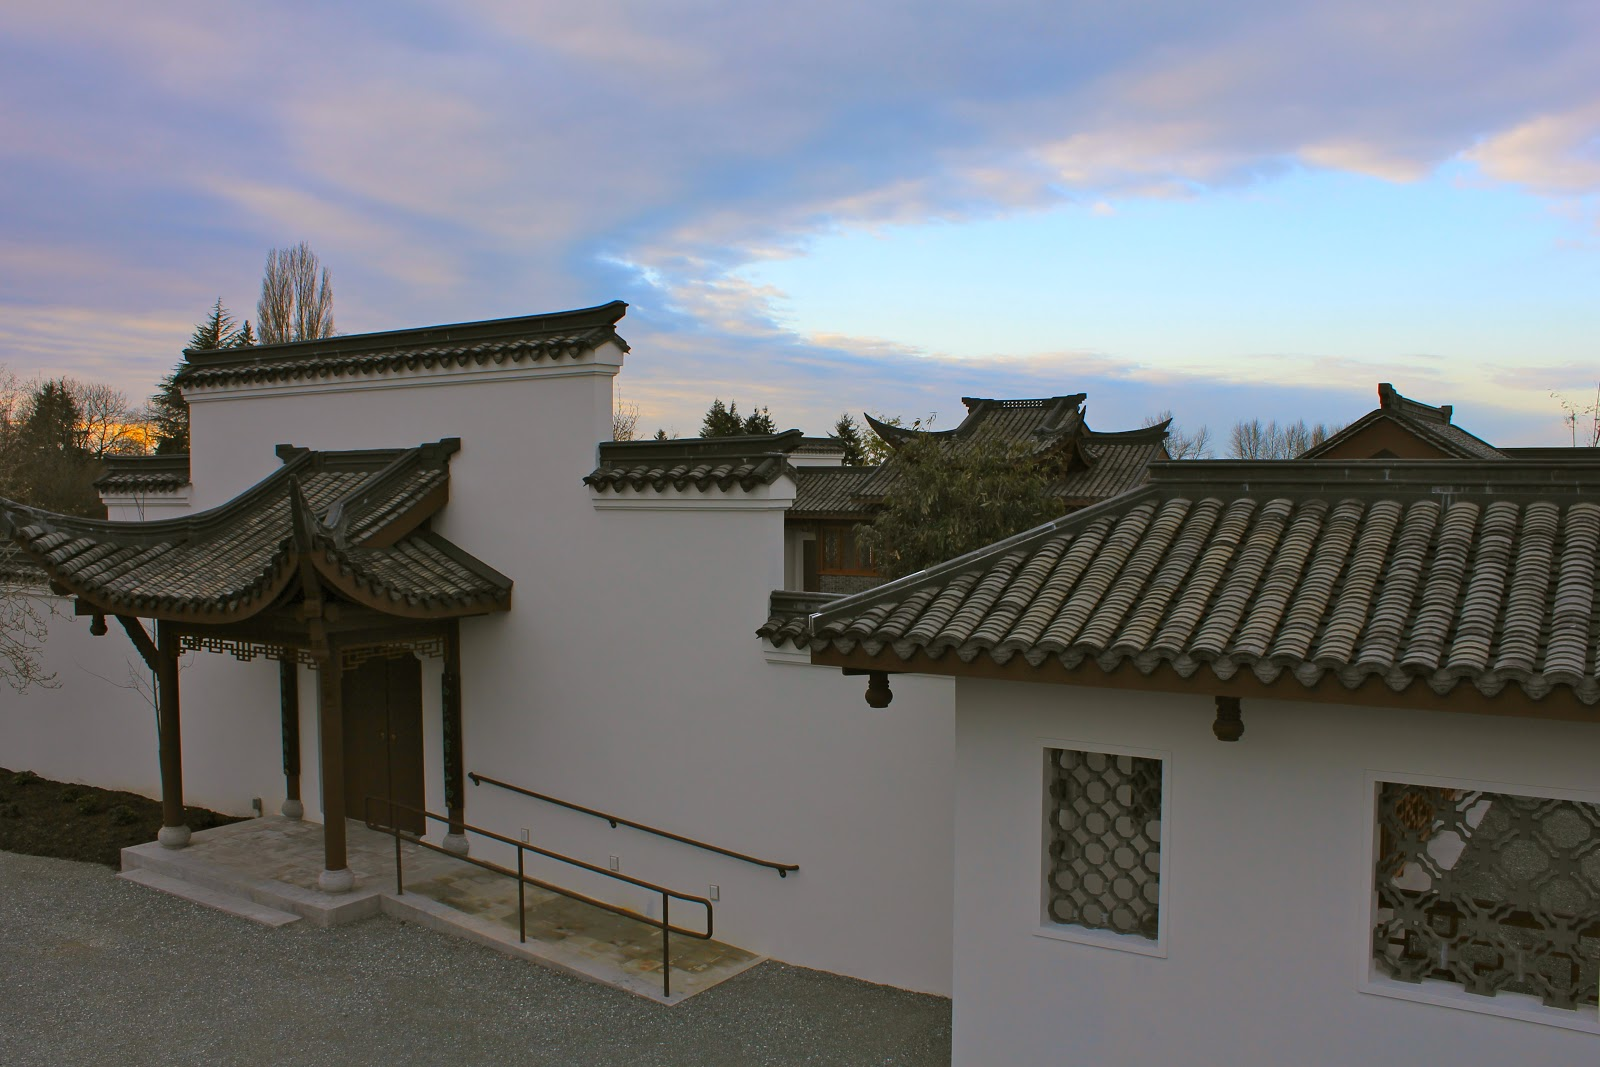 winter sky opens spring window seattle chinese garden 西华园